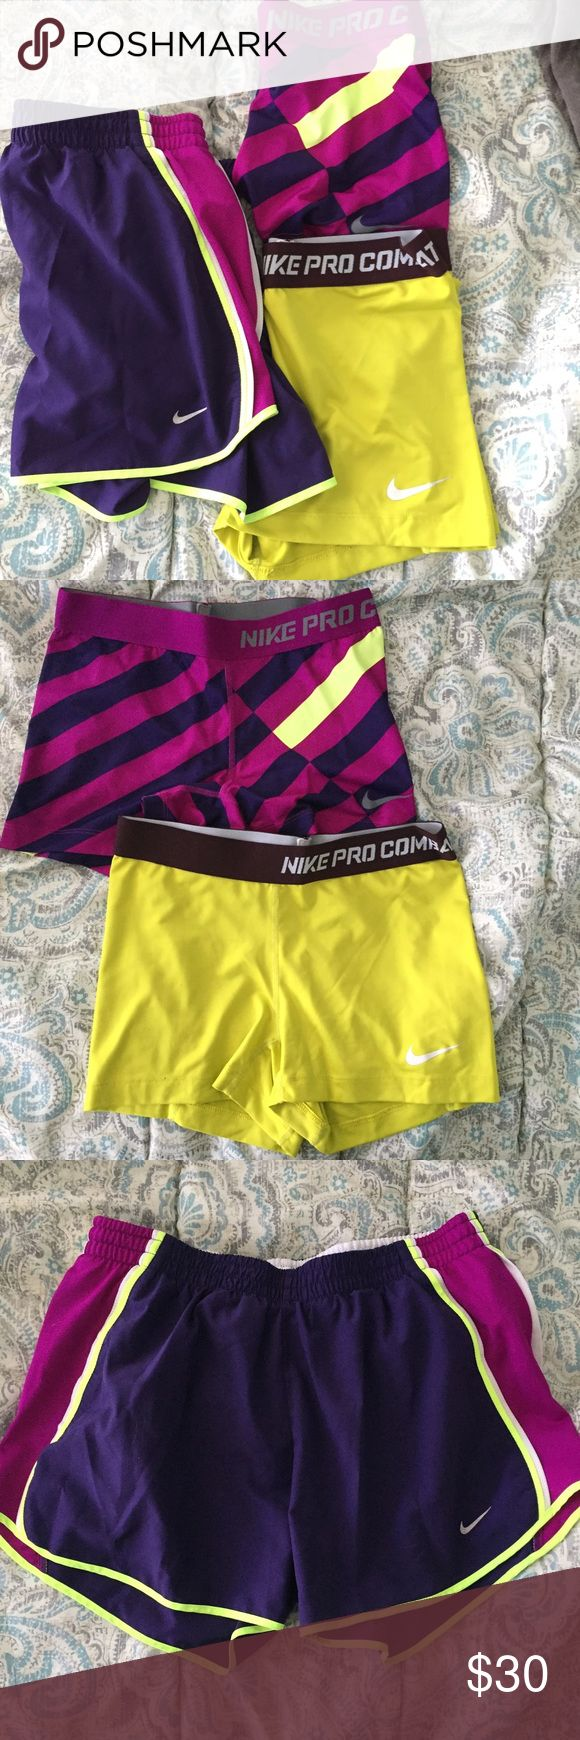 Nike Pro Compression and Dry Fit Shorts Two pairs of Nike pro compression shorts. One is yellow with brow detail and the other is purple striped with some neon yellow detail. The dry fit shorts are also purple with neon yellow detail. All are a size medium!! Nike Shorts